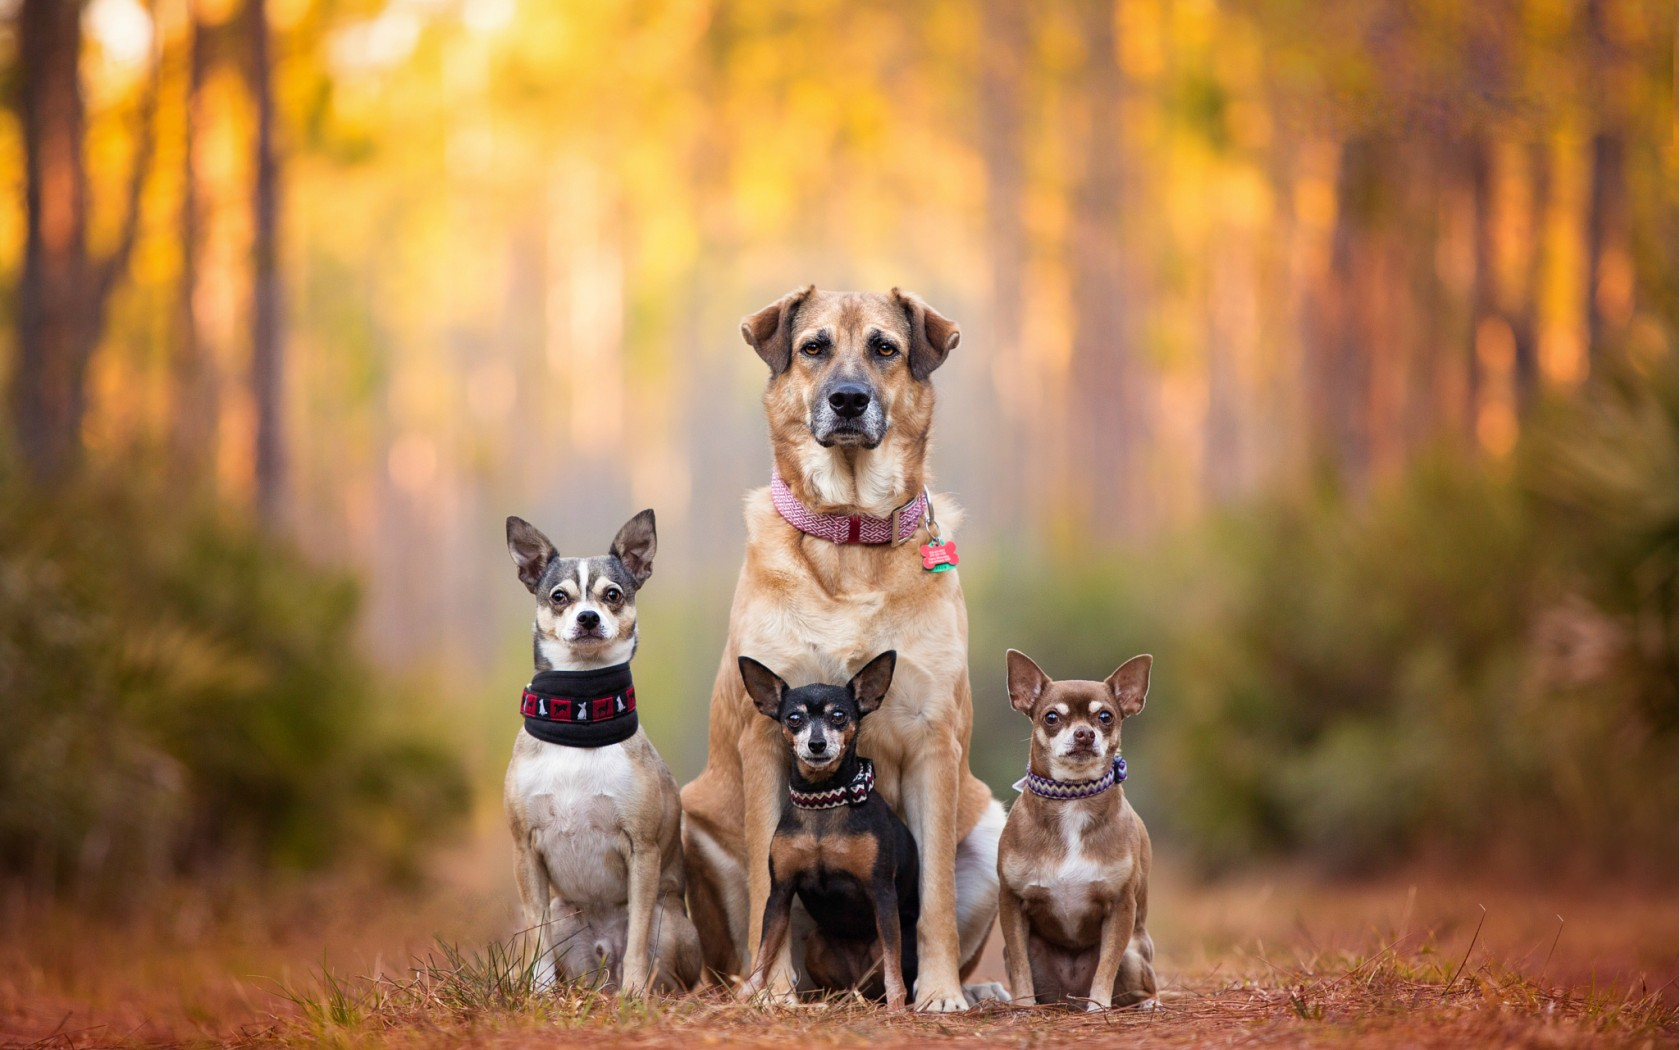 Dog Training Port Macquarie - Leaders of the Pack